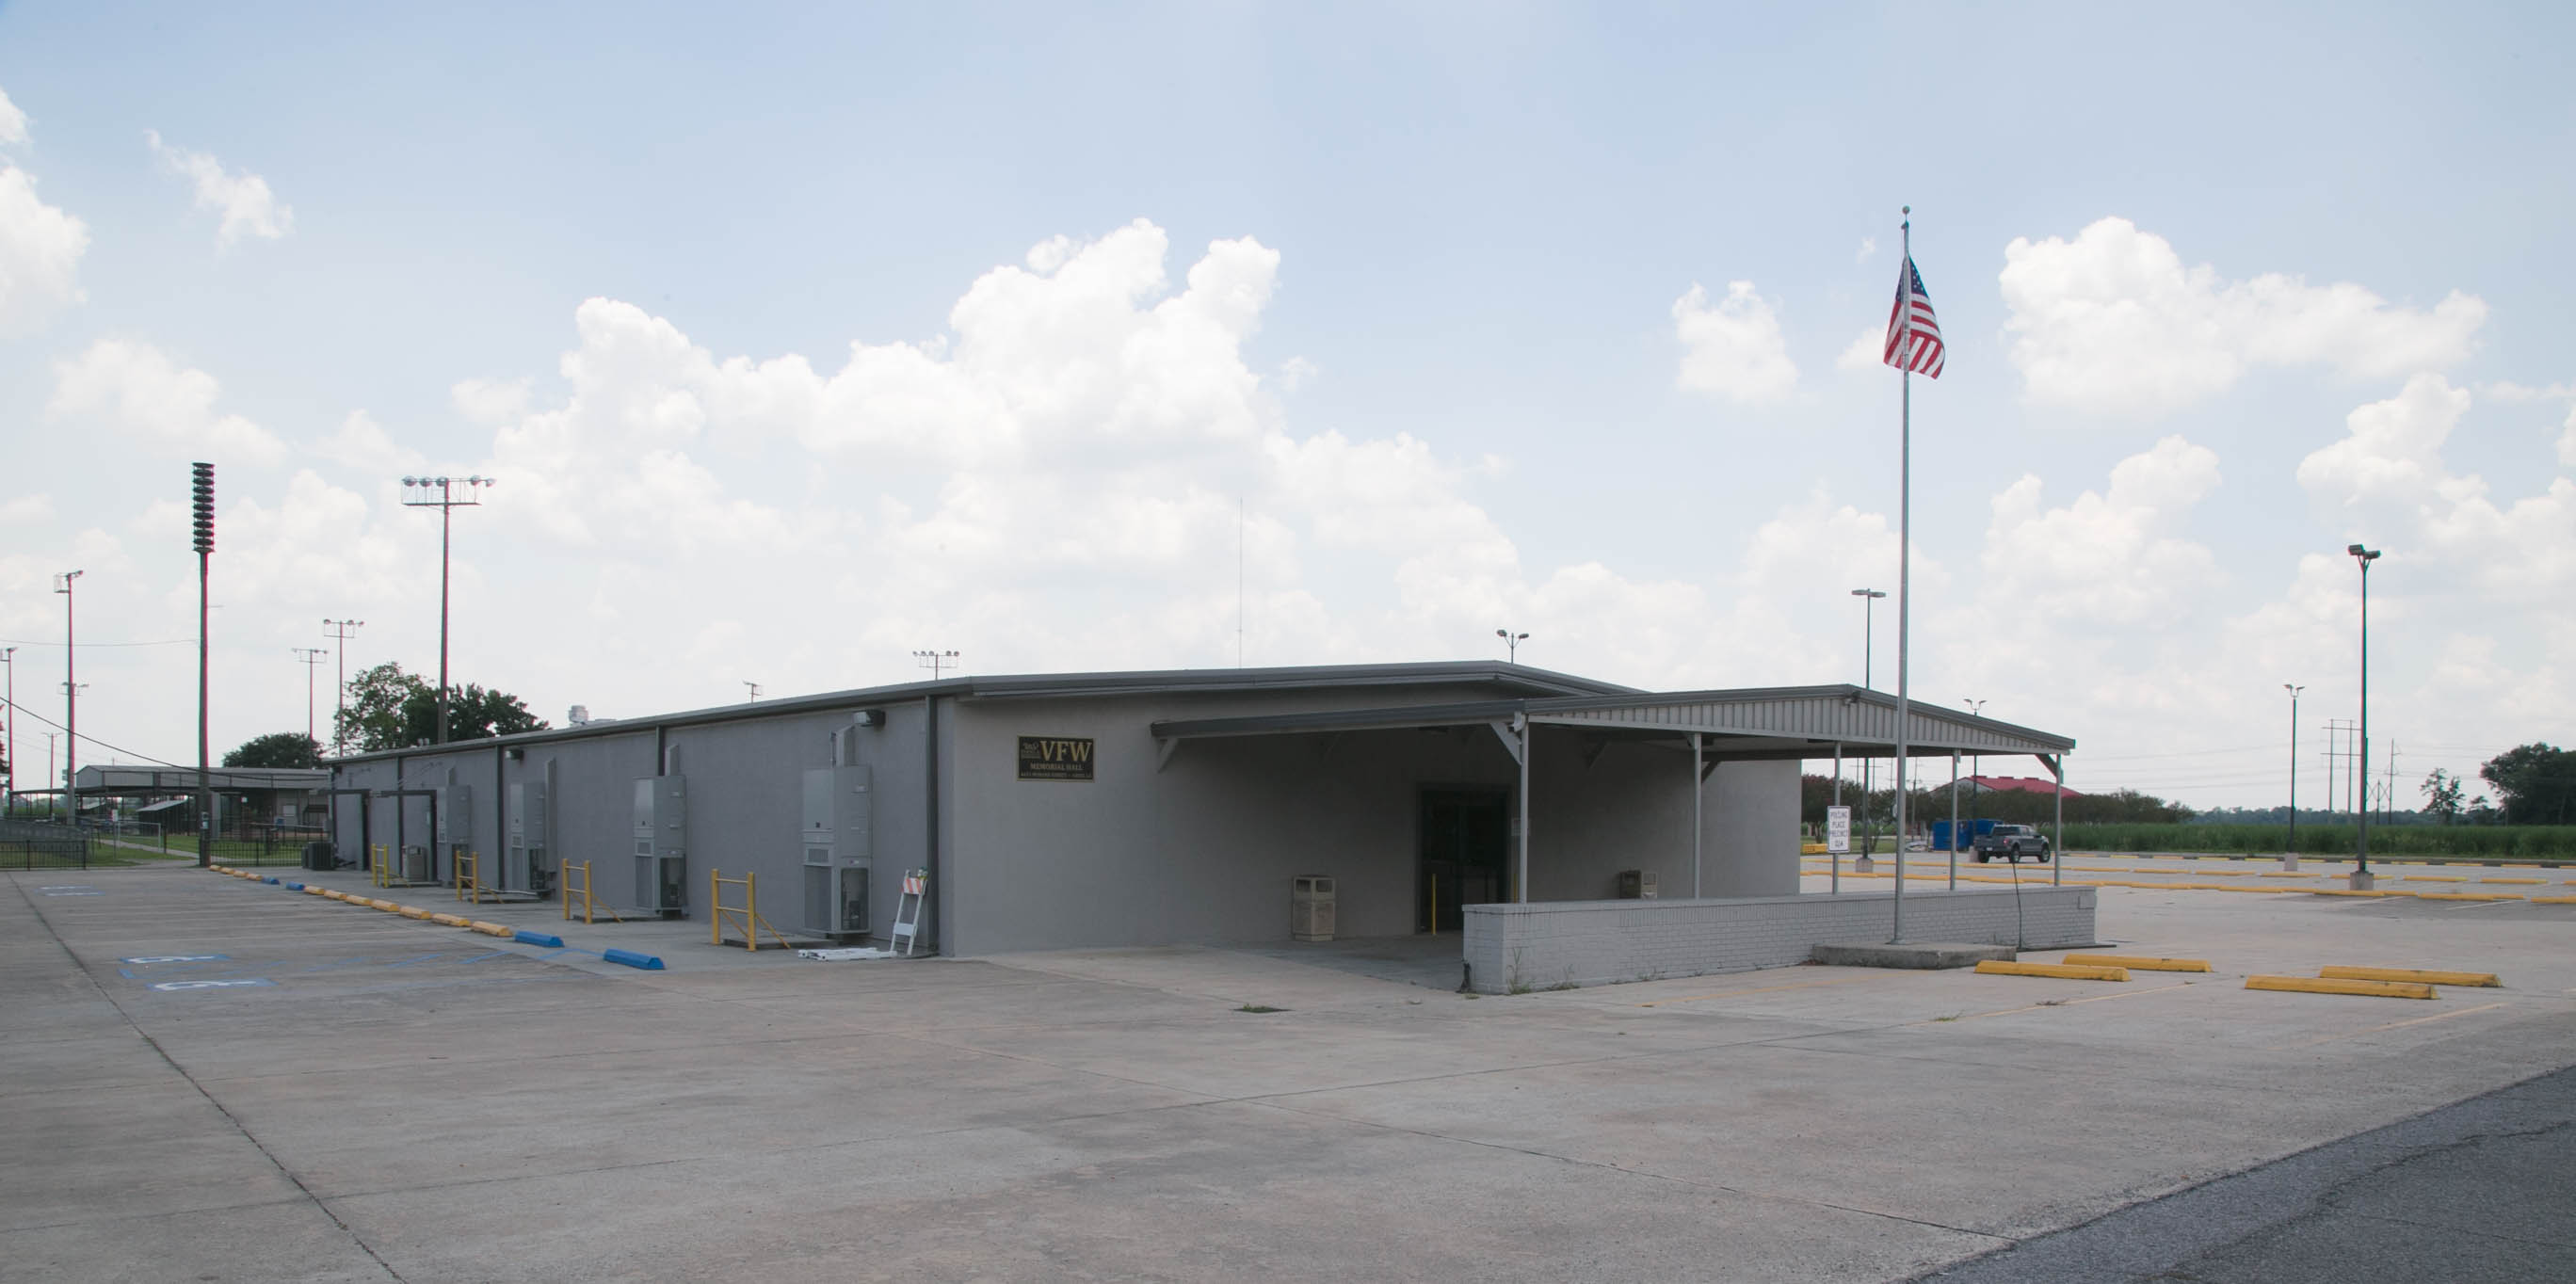 VFW outside view